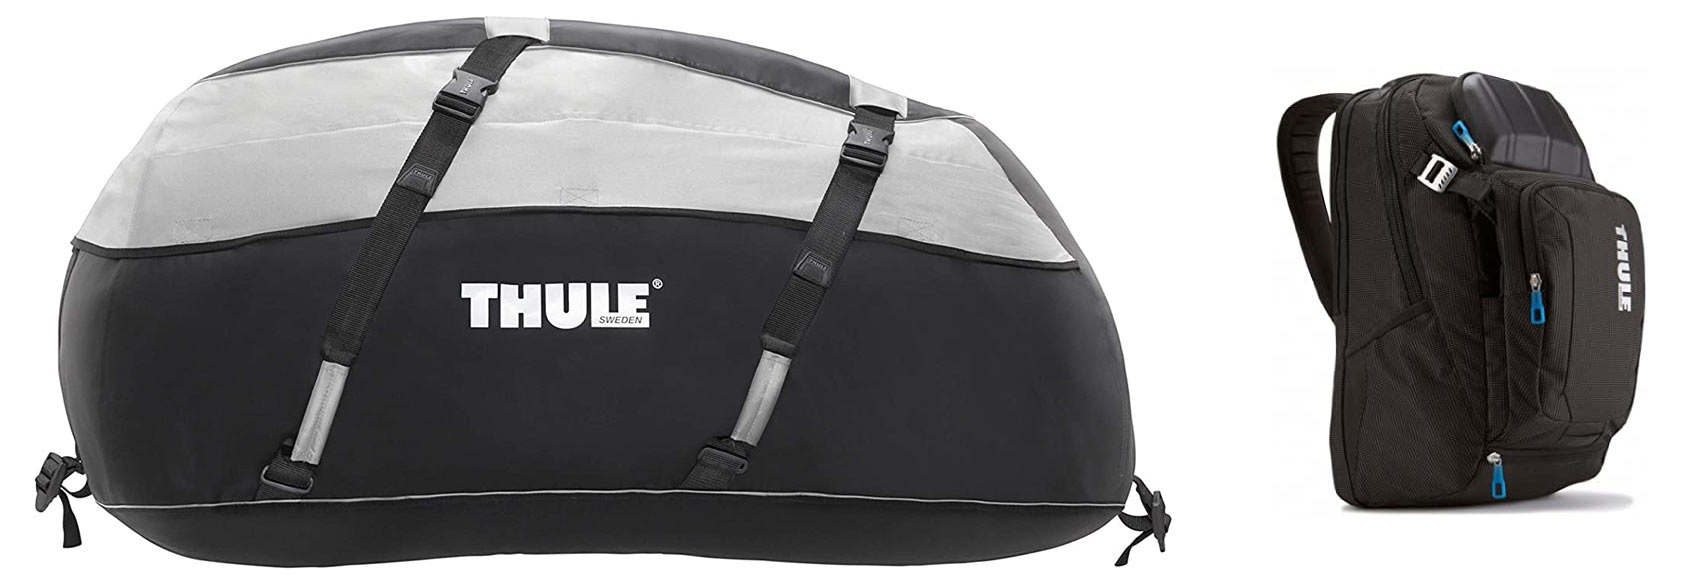 thule soft side rooftop cargo bag for vehicle roof racks on sale with amazon prime day 2020